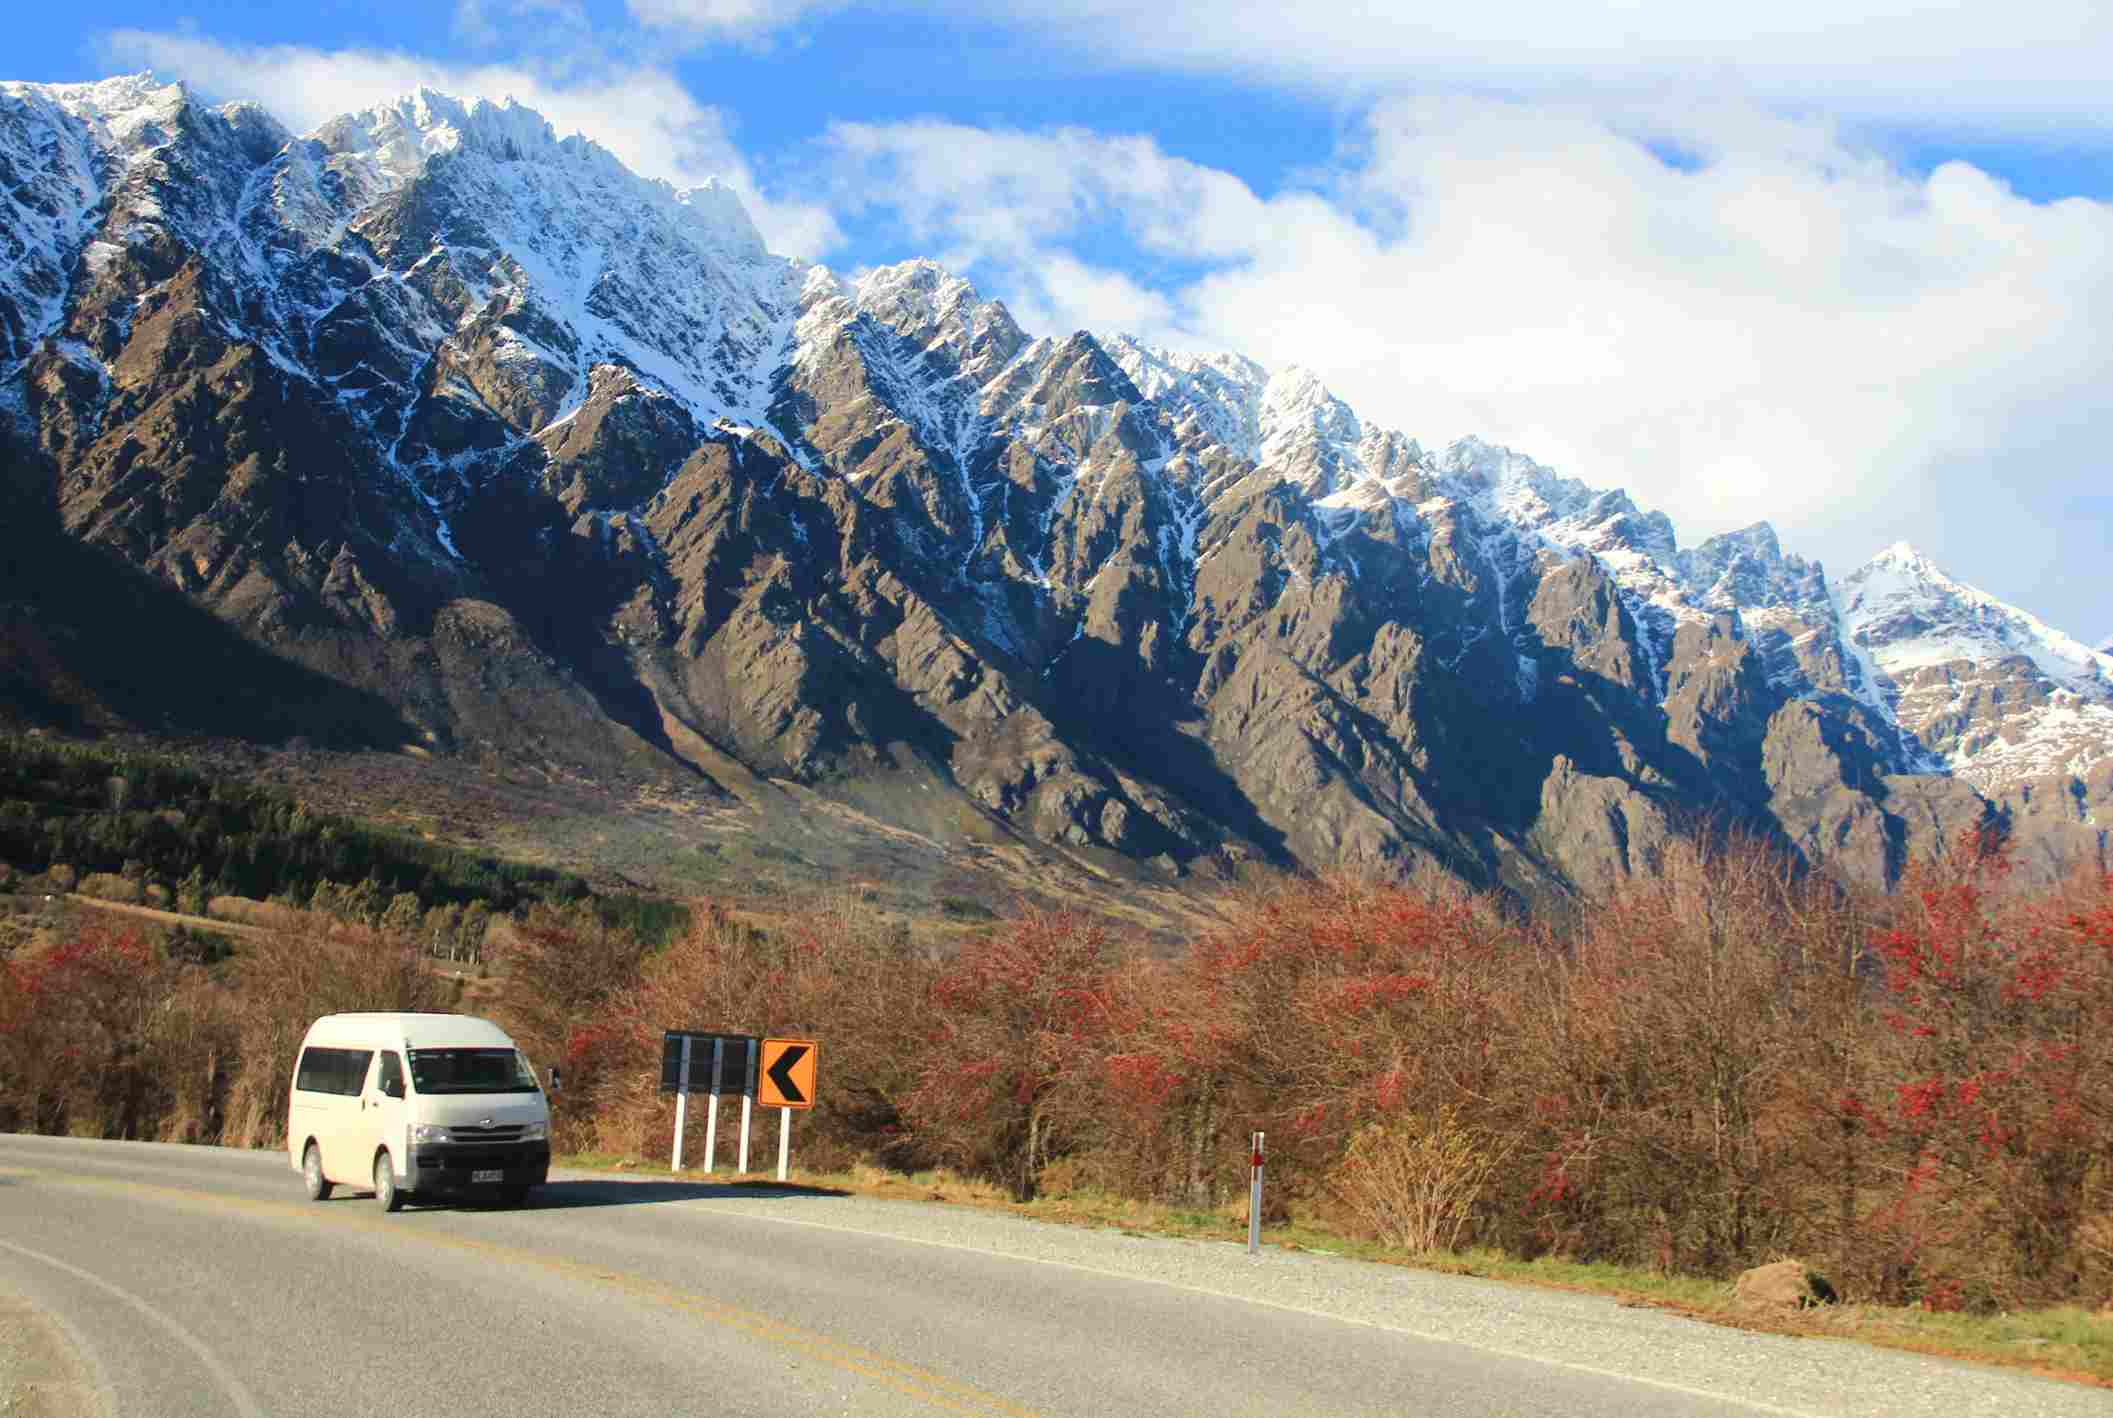 Campervan against backdrop of snowy mountains in New Zealand in winter